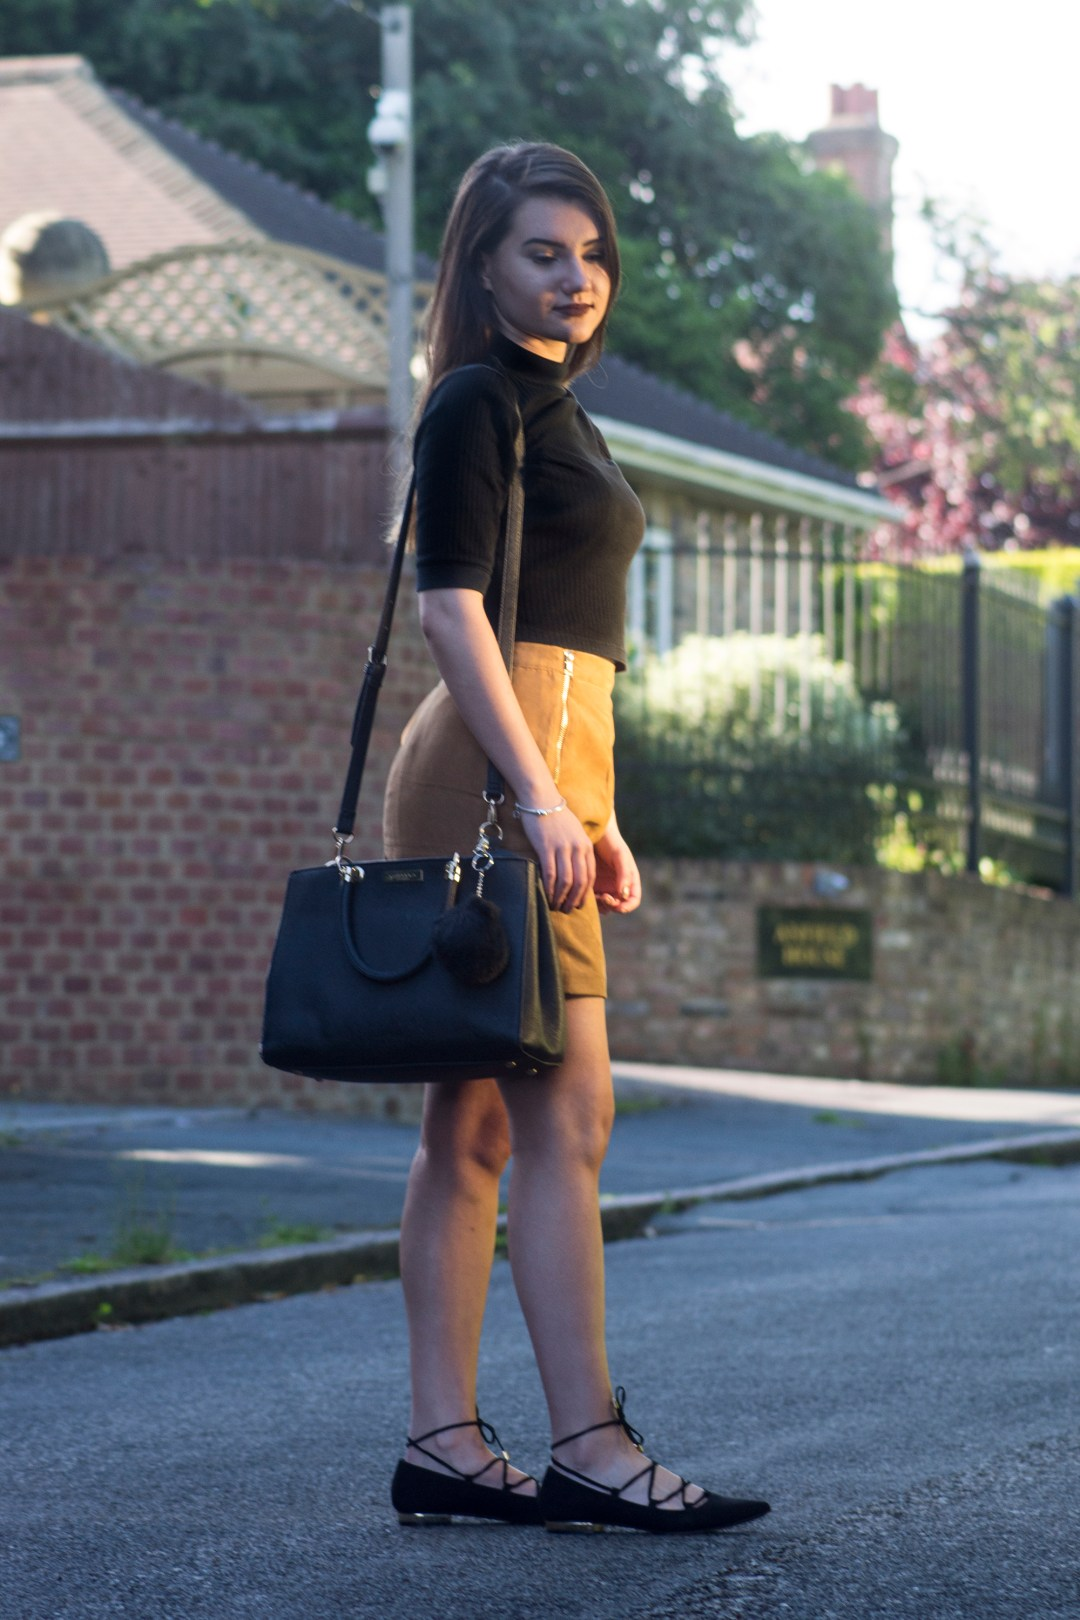 How to style a suede skirt?